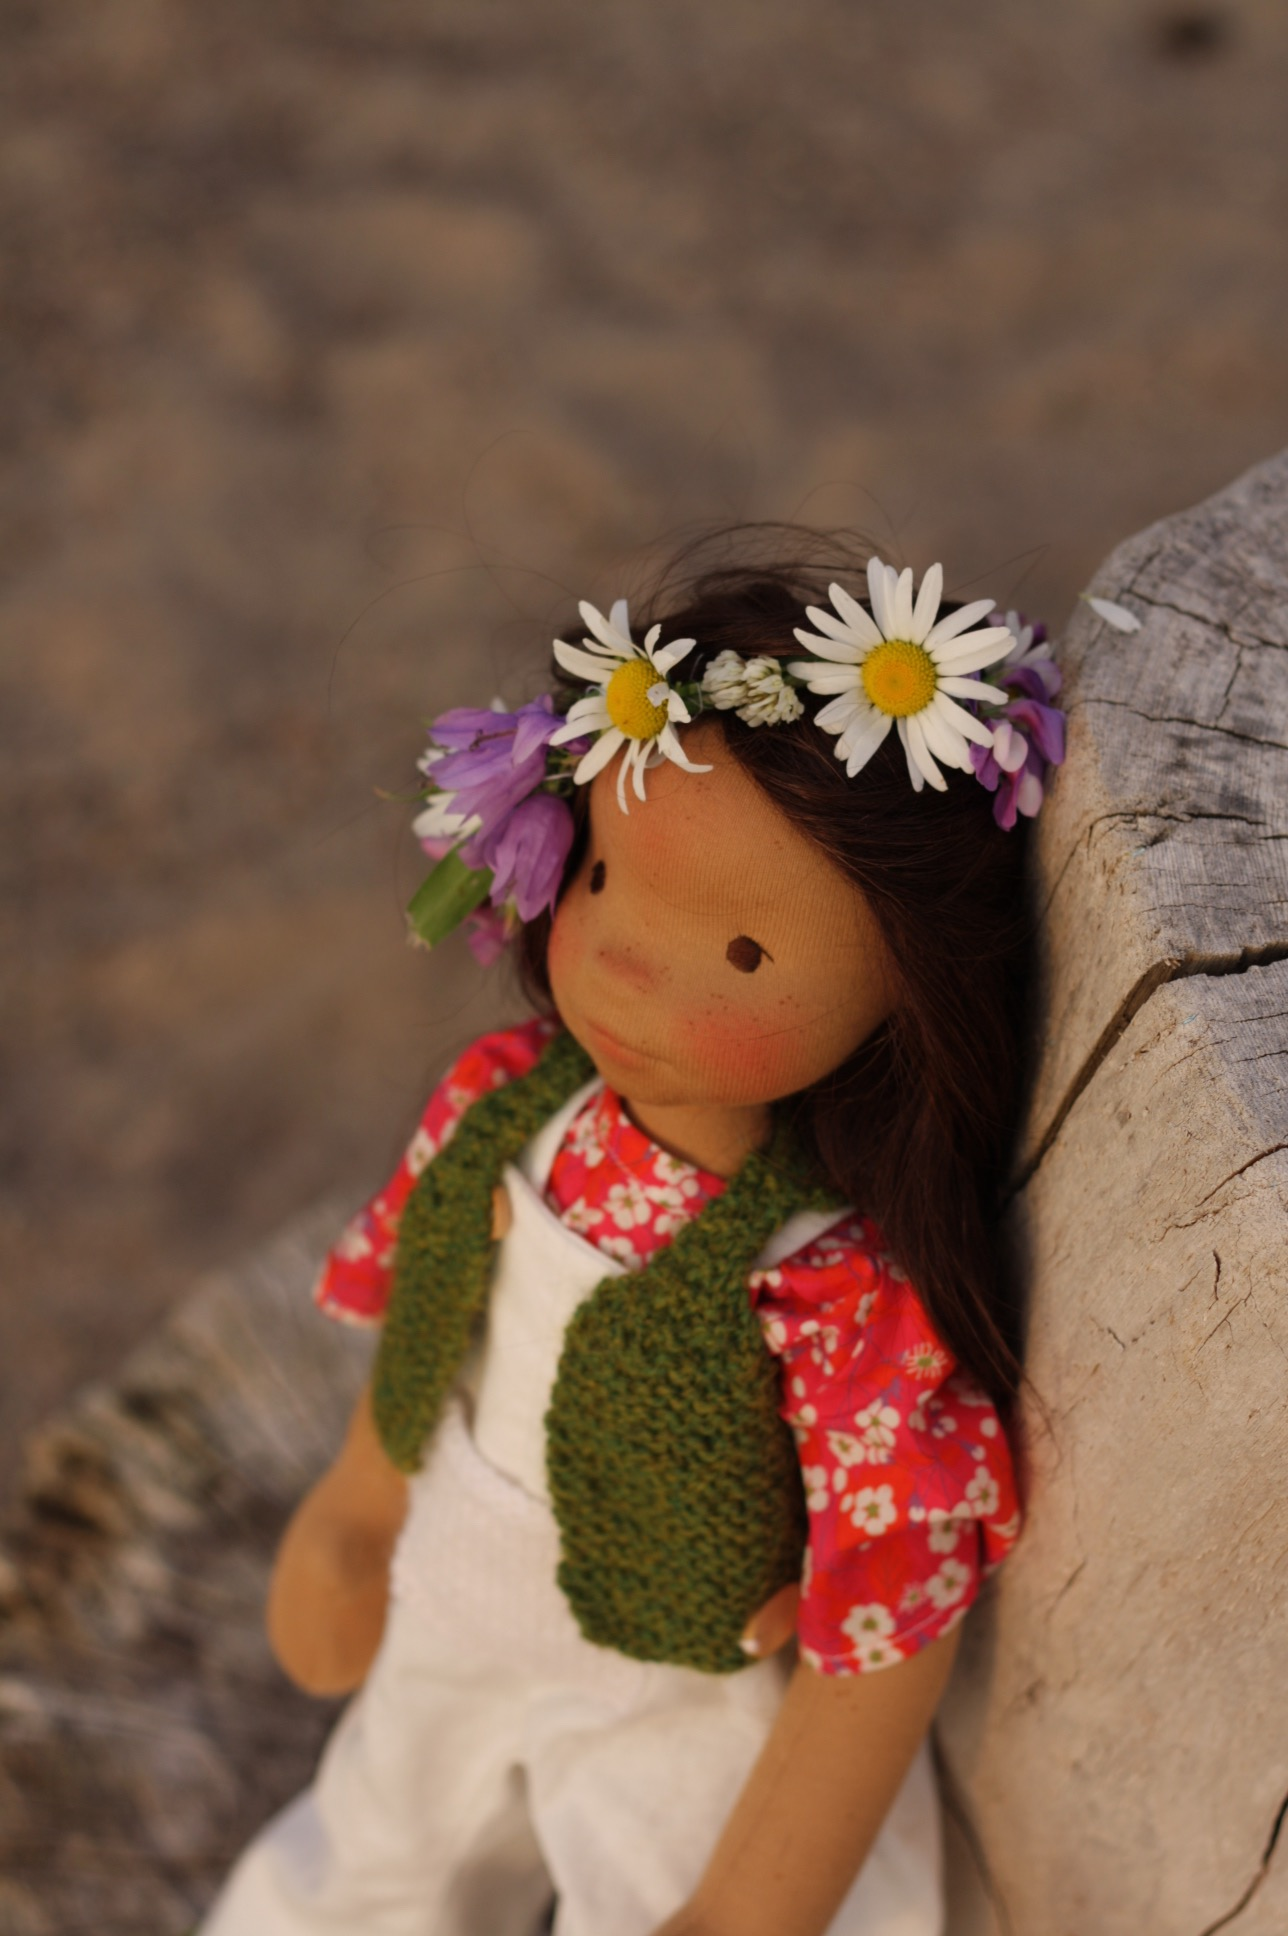 Cedar - Enjoys sunsets, lakes and wildflowers in her hair...